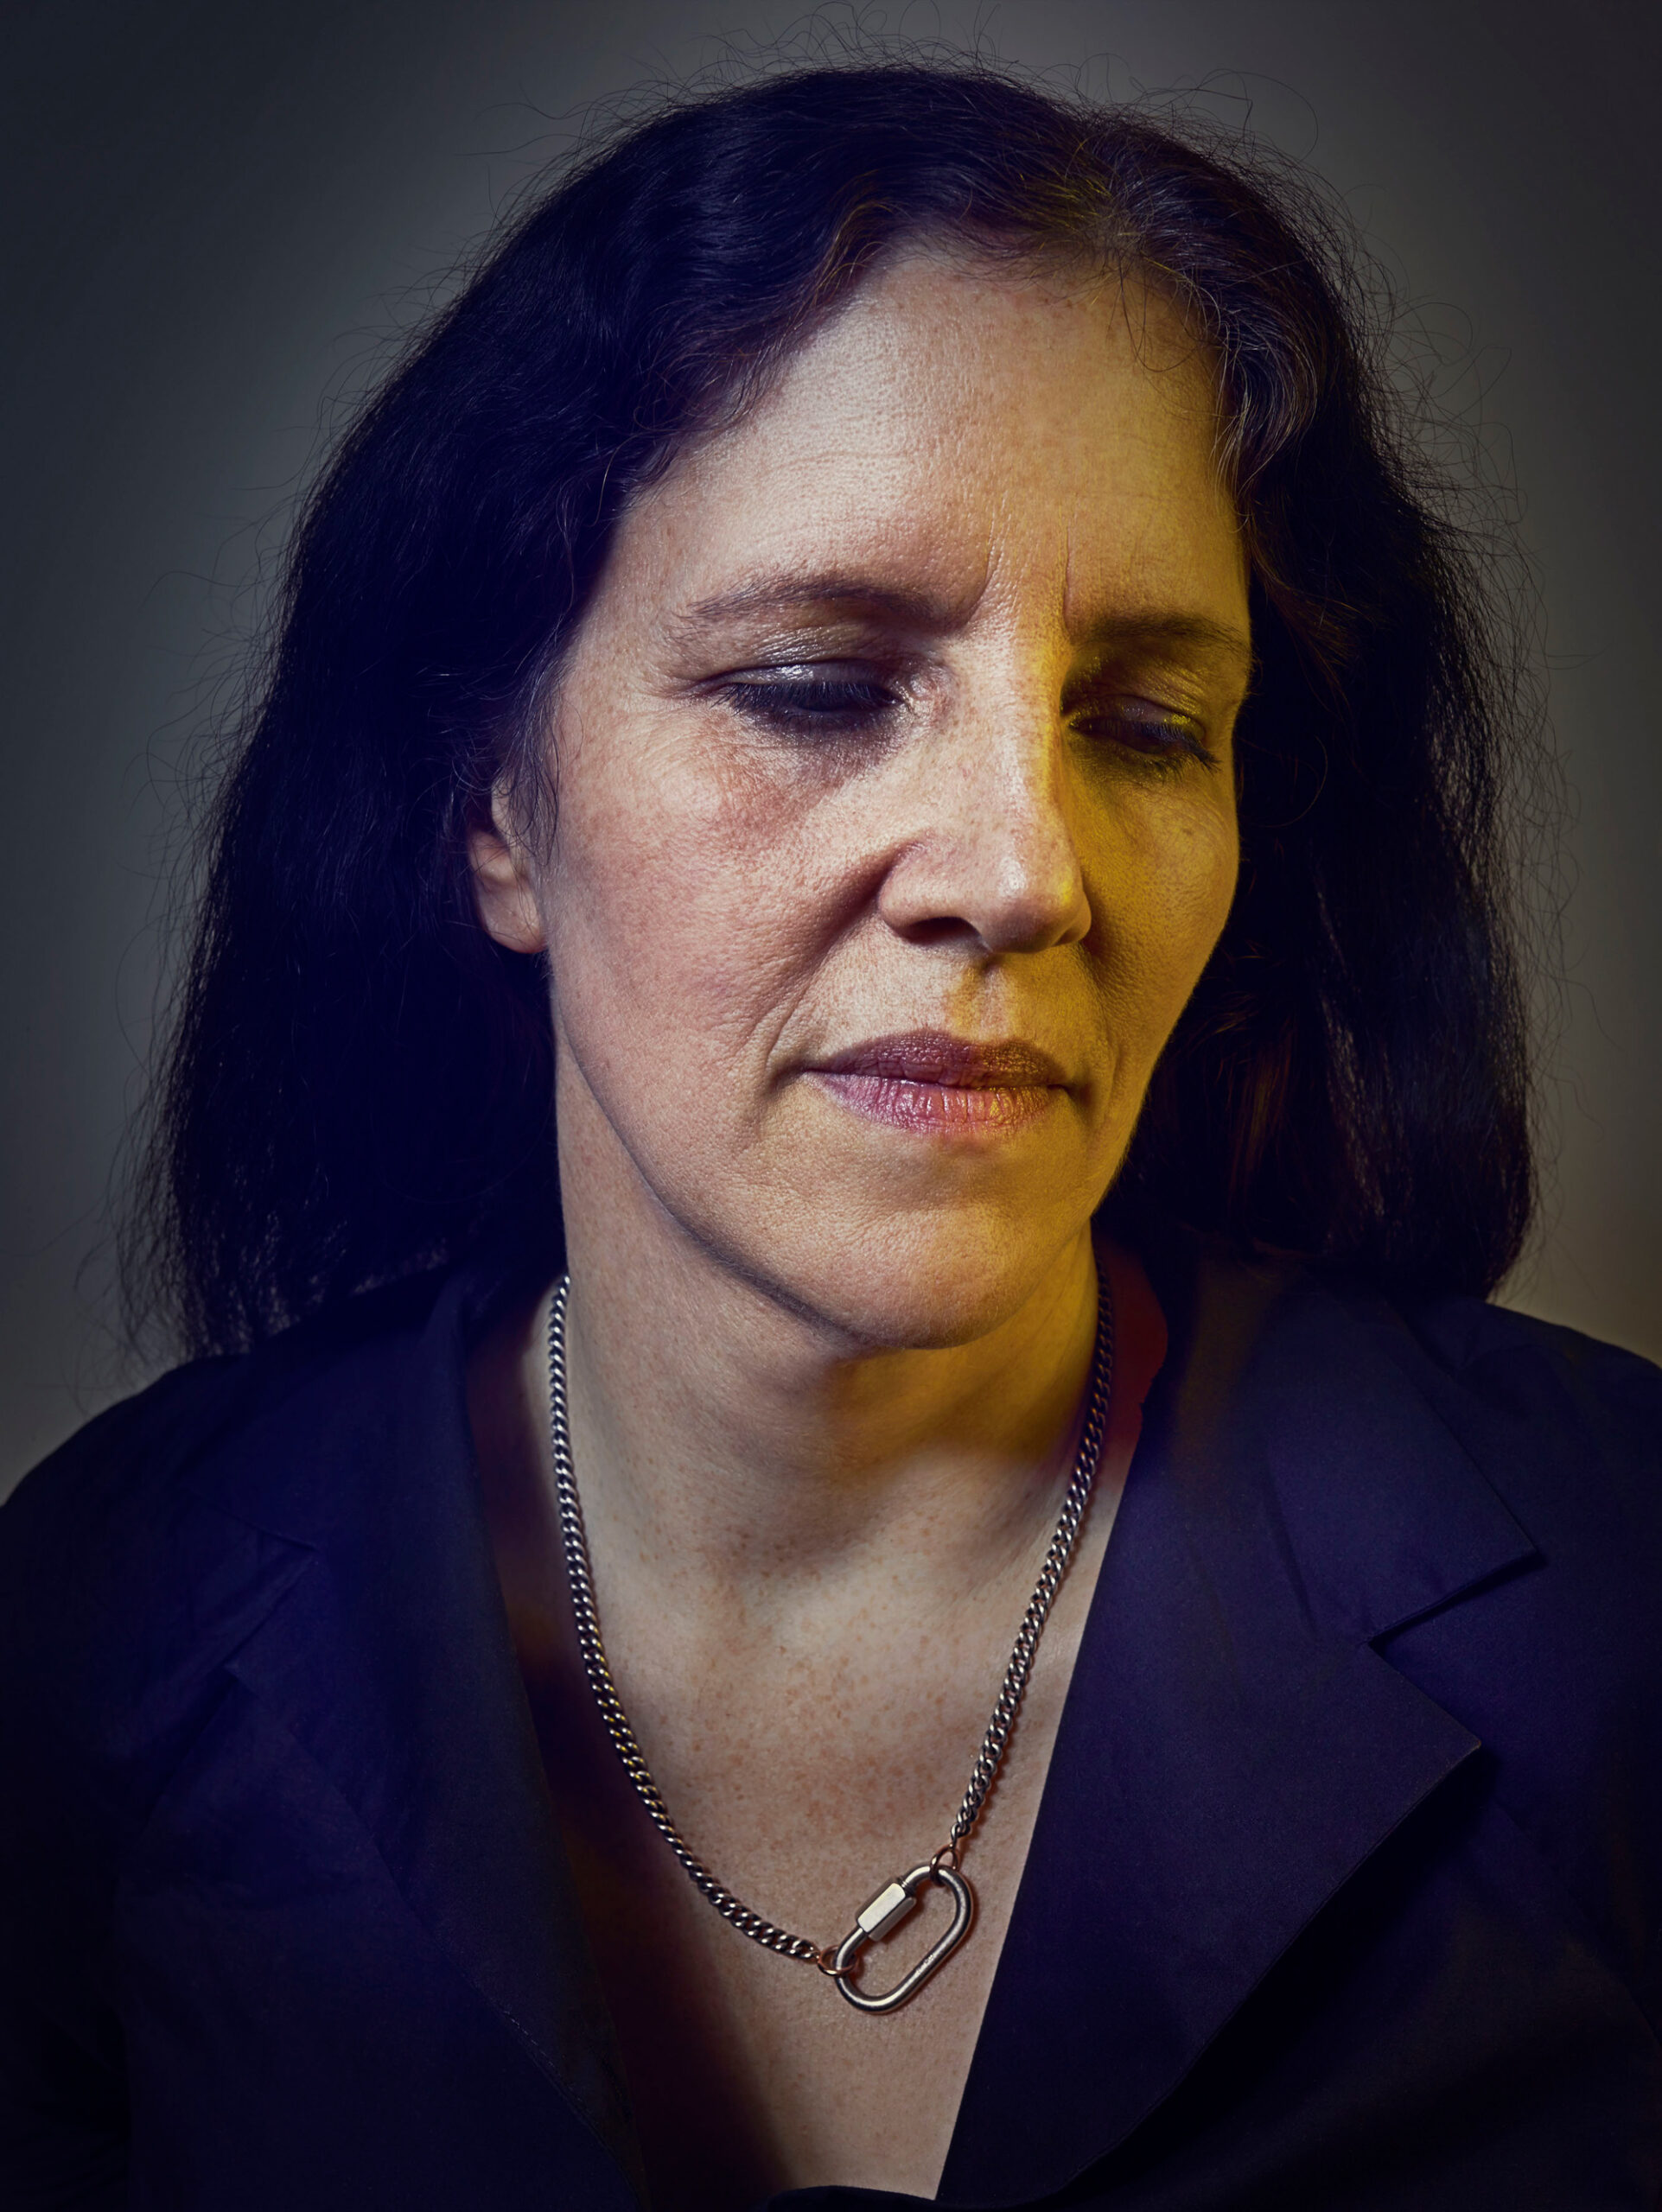 James-Day-Laura-Poitras-New-Yorker